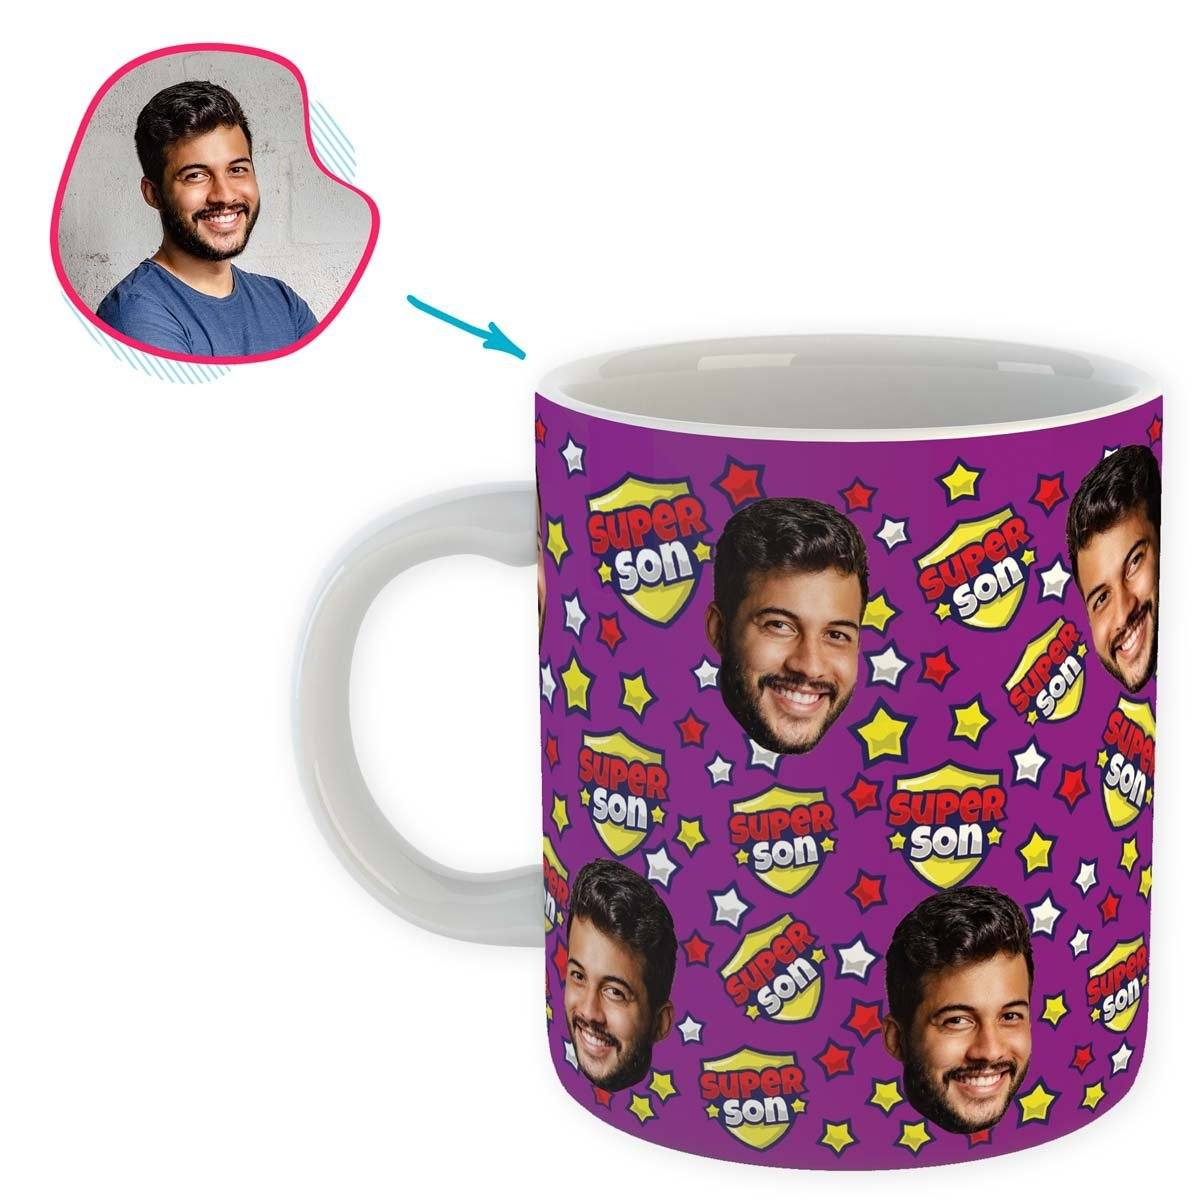 purple Super Son mug personalized with photo of face printed on it